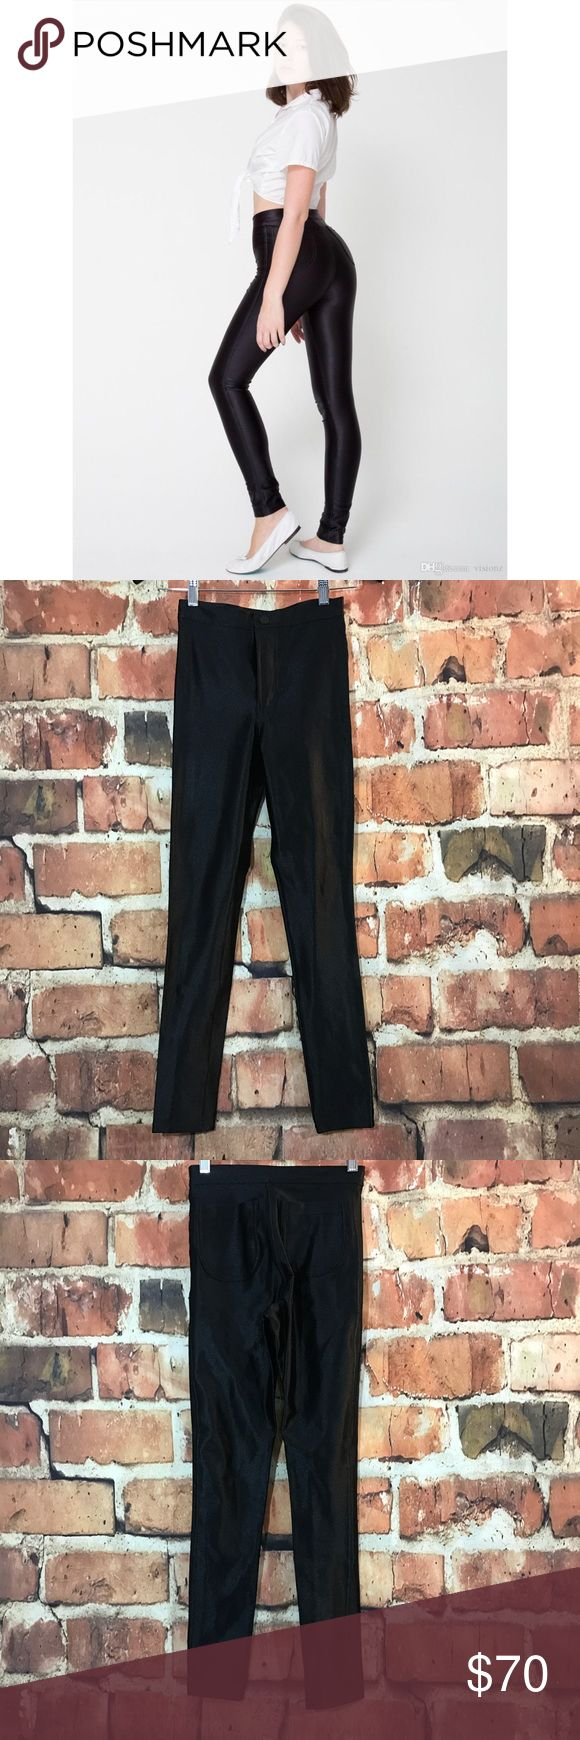 66 Off American Apparel Pants Sale American Apparel Black Disco - American apparel black disco pants xs